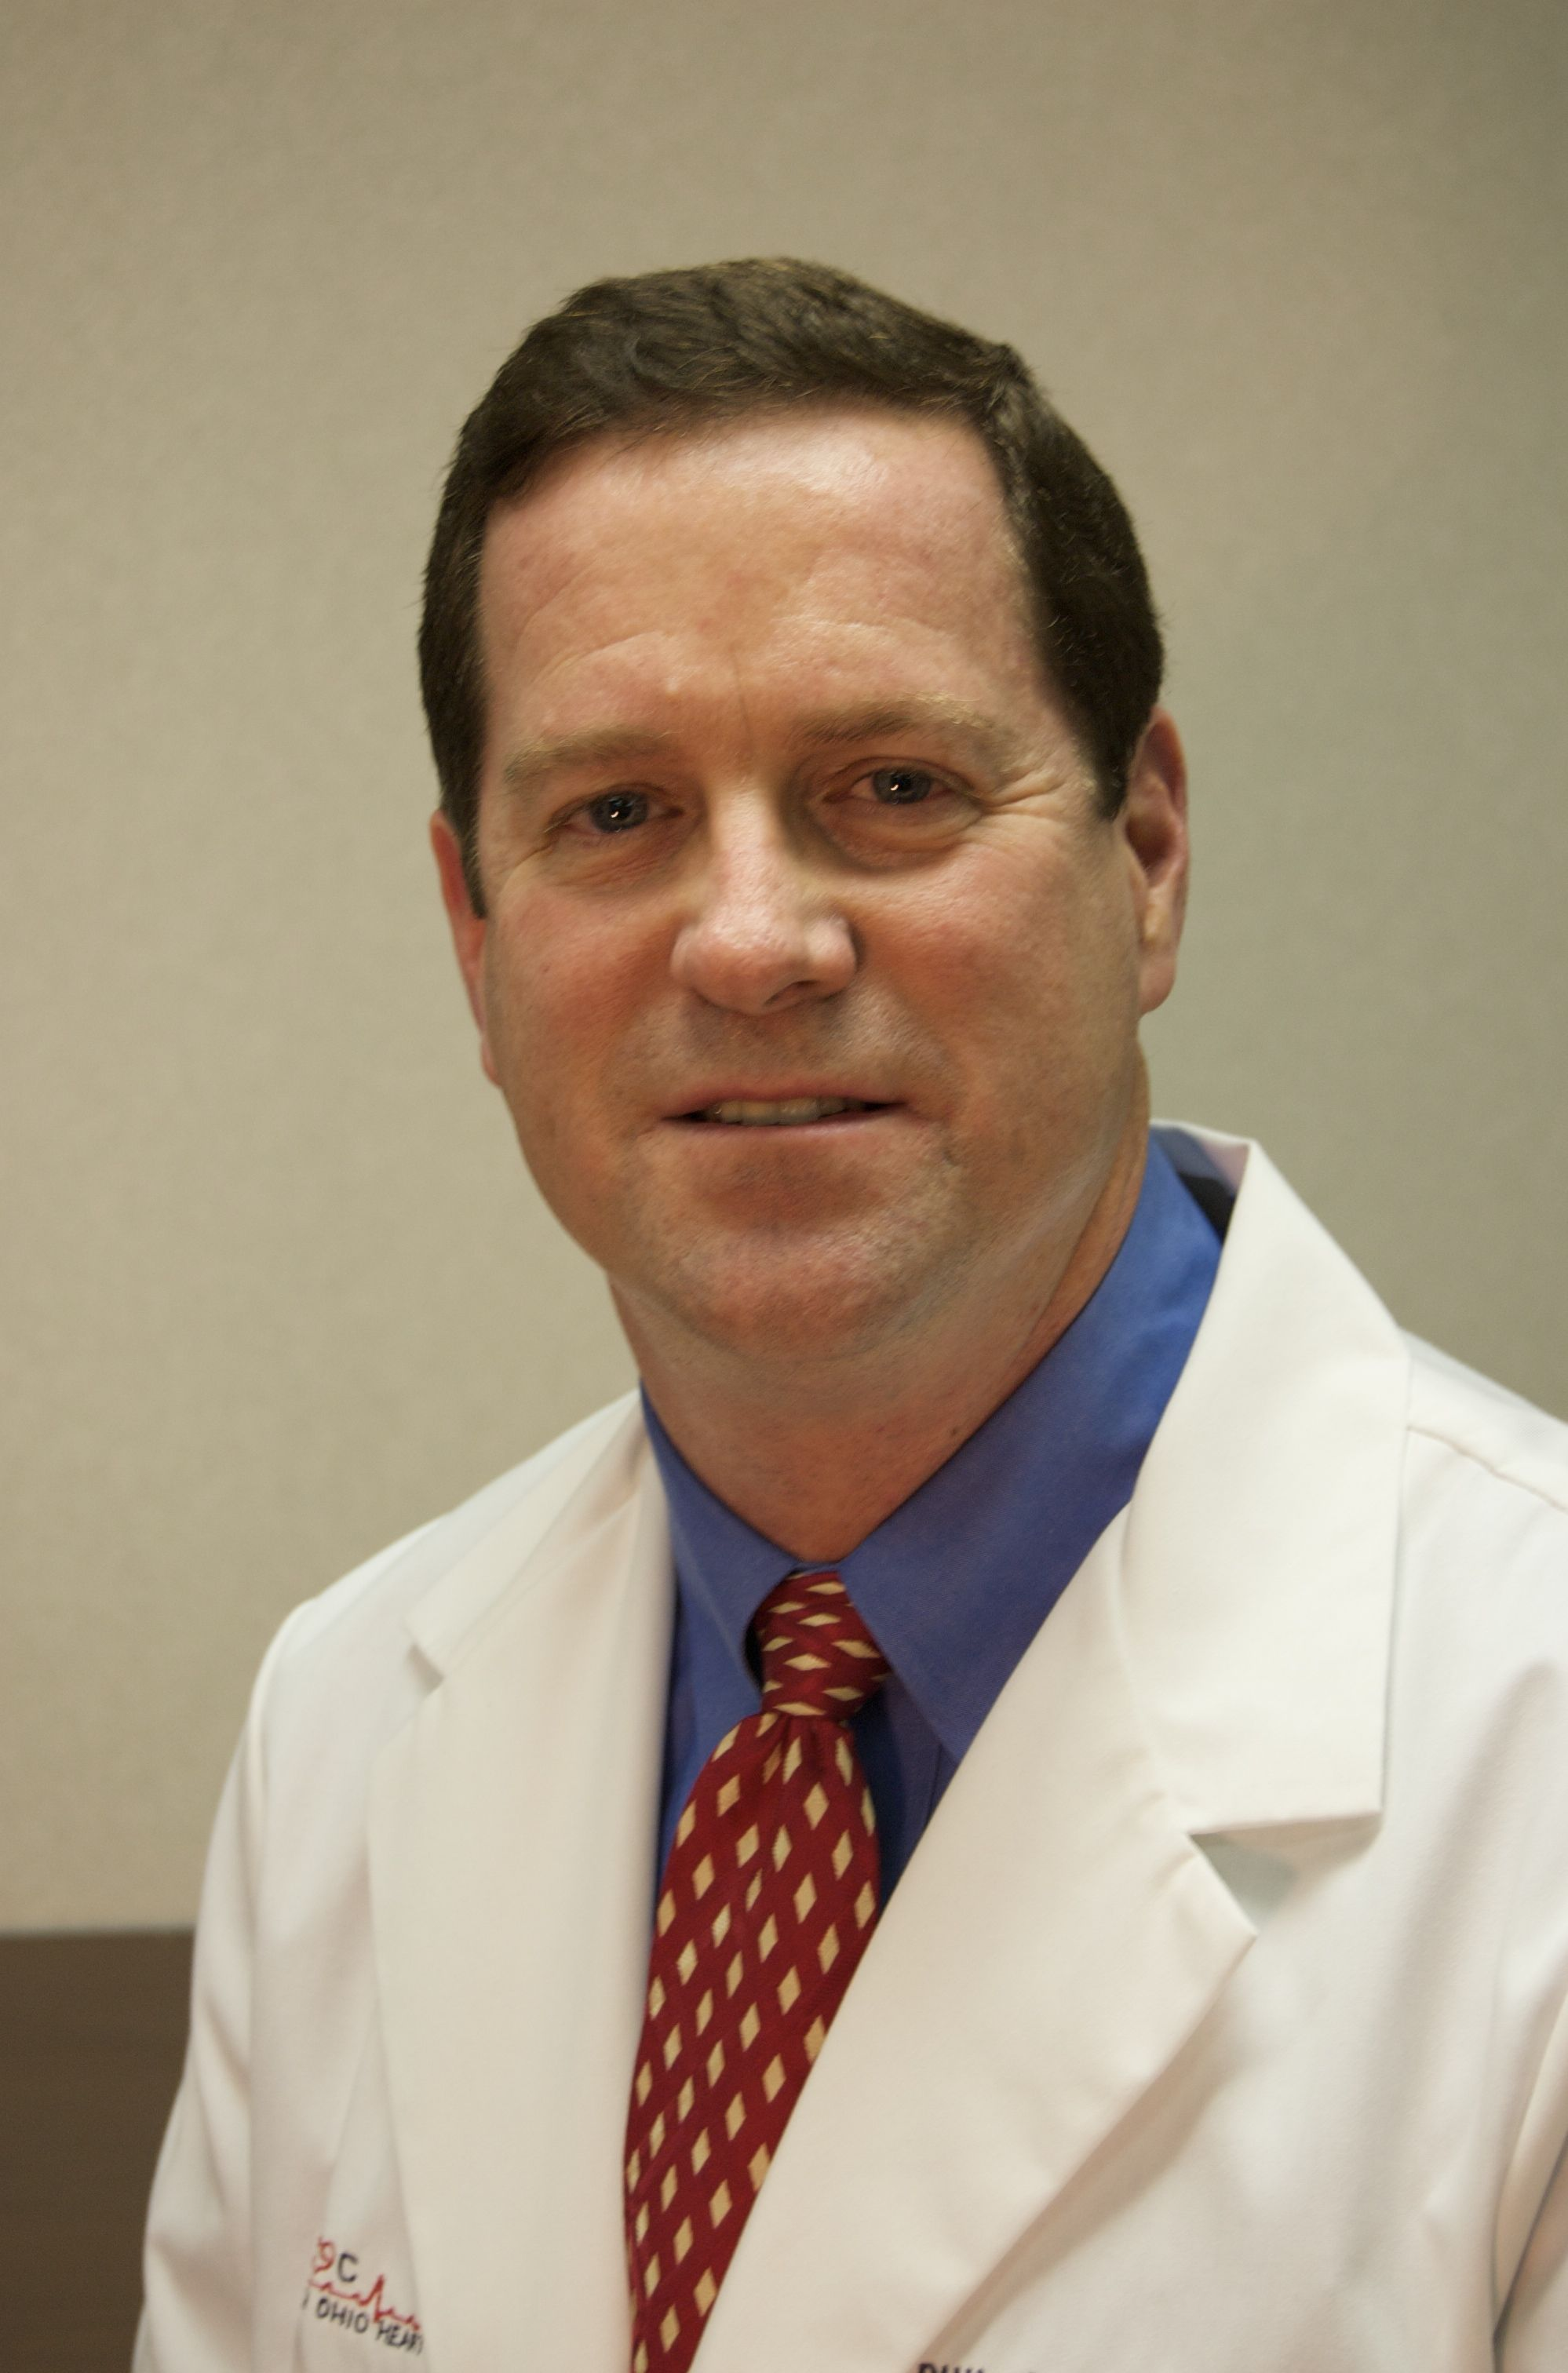 Dr. Scott McCallister specializes in General Cardiology